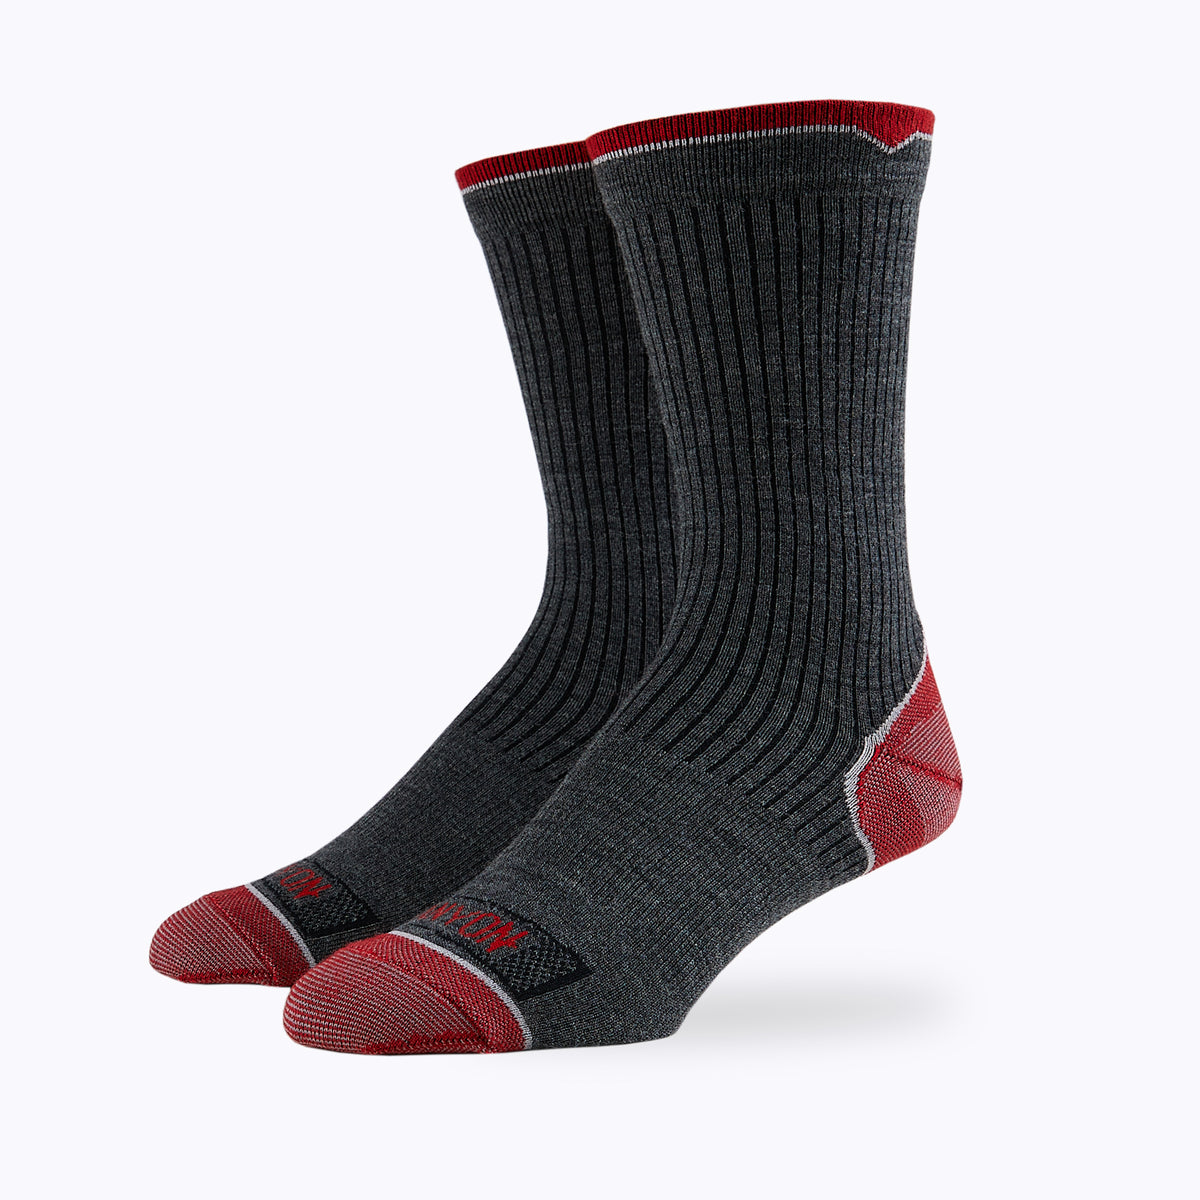 Essential 3 Pack Mix Men's Crew Socks -  by Canyon Socks